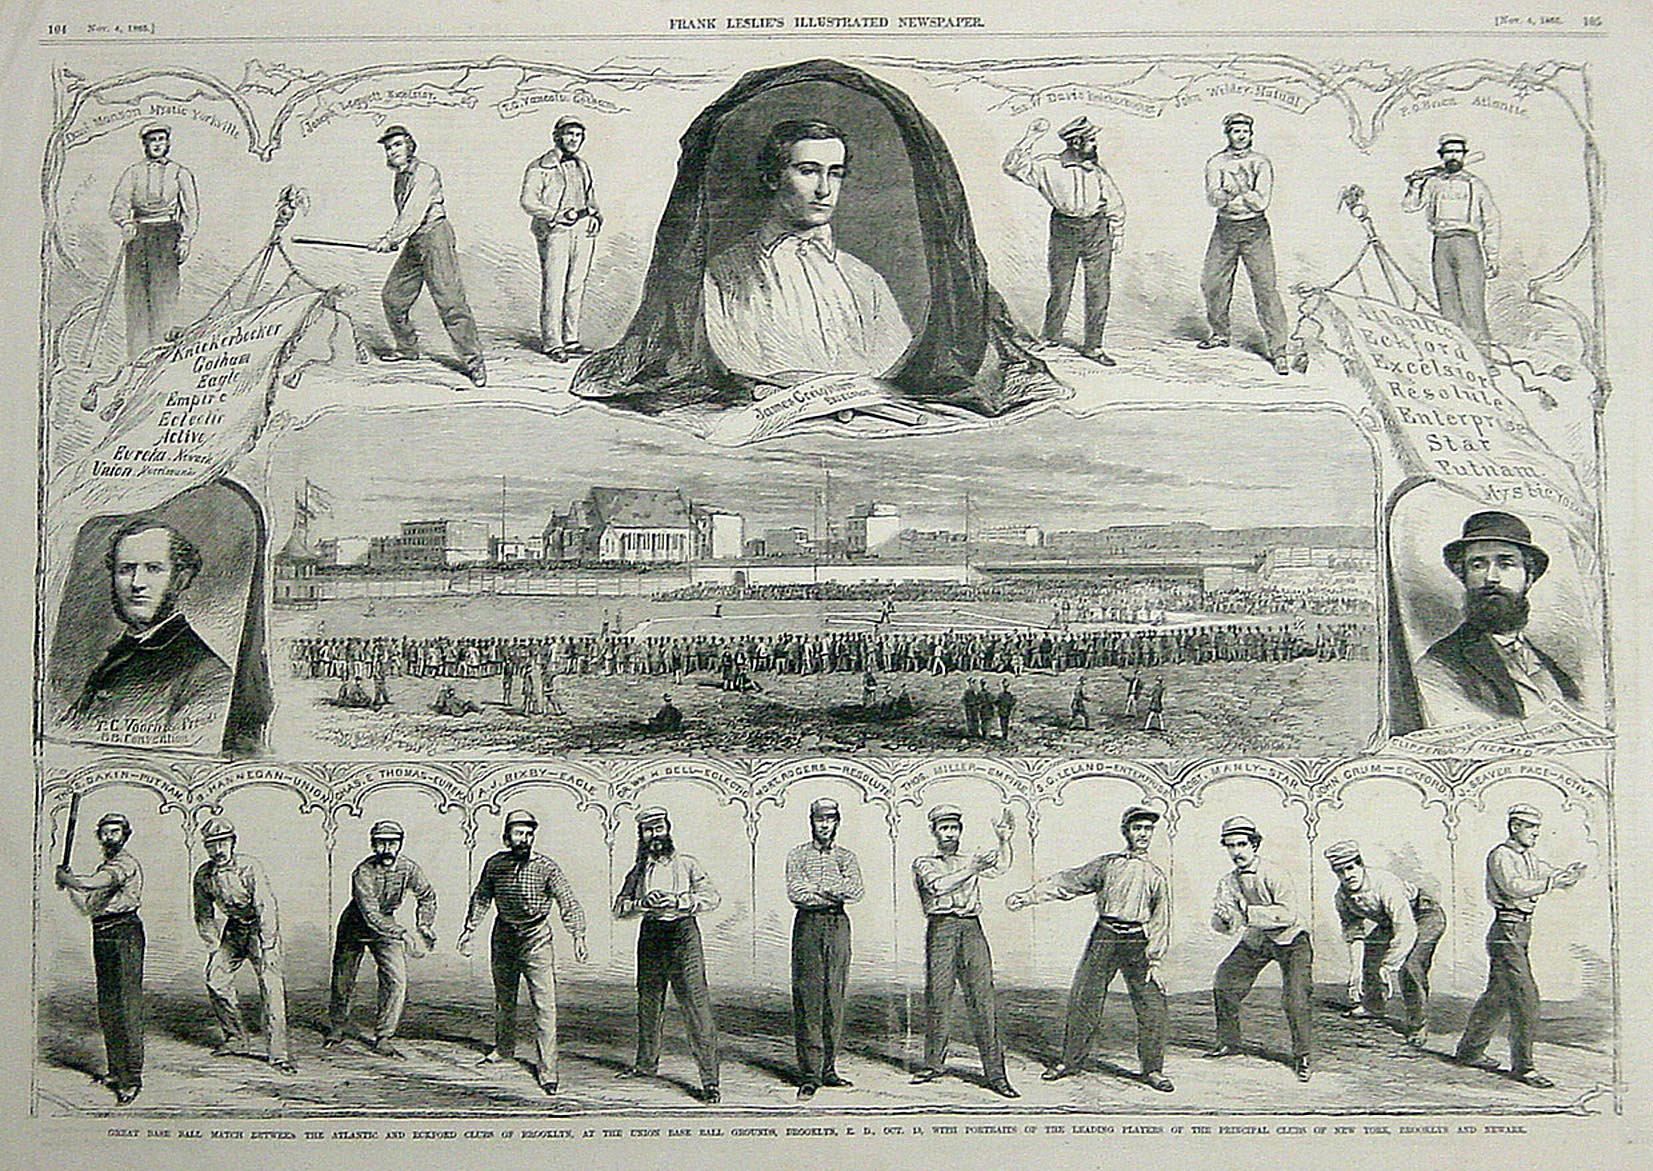 1865 Leslie's Illustrated Newspaper wood-engraving featuring early baseball star James Creighton